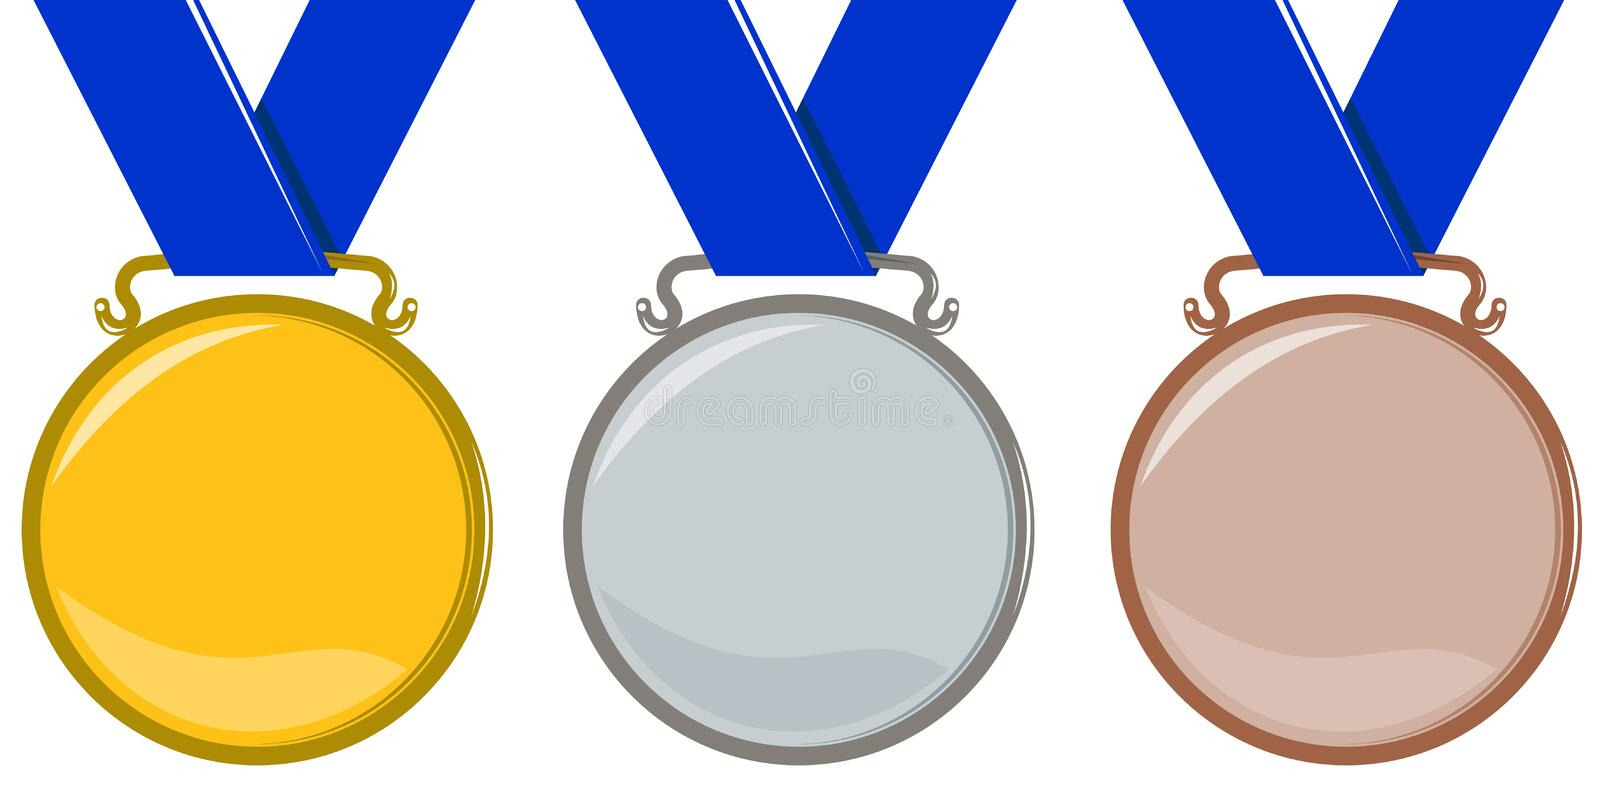 olympic medals stock vector illustration of winner isolated 5966770 rh dreamstime com Olympic Rings Olympic Medal Template